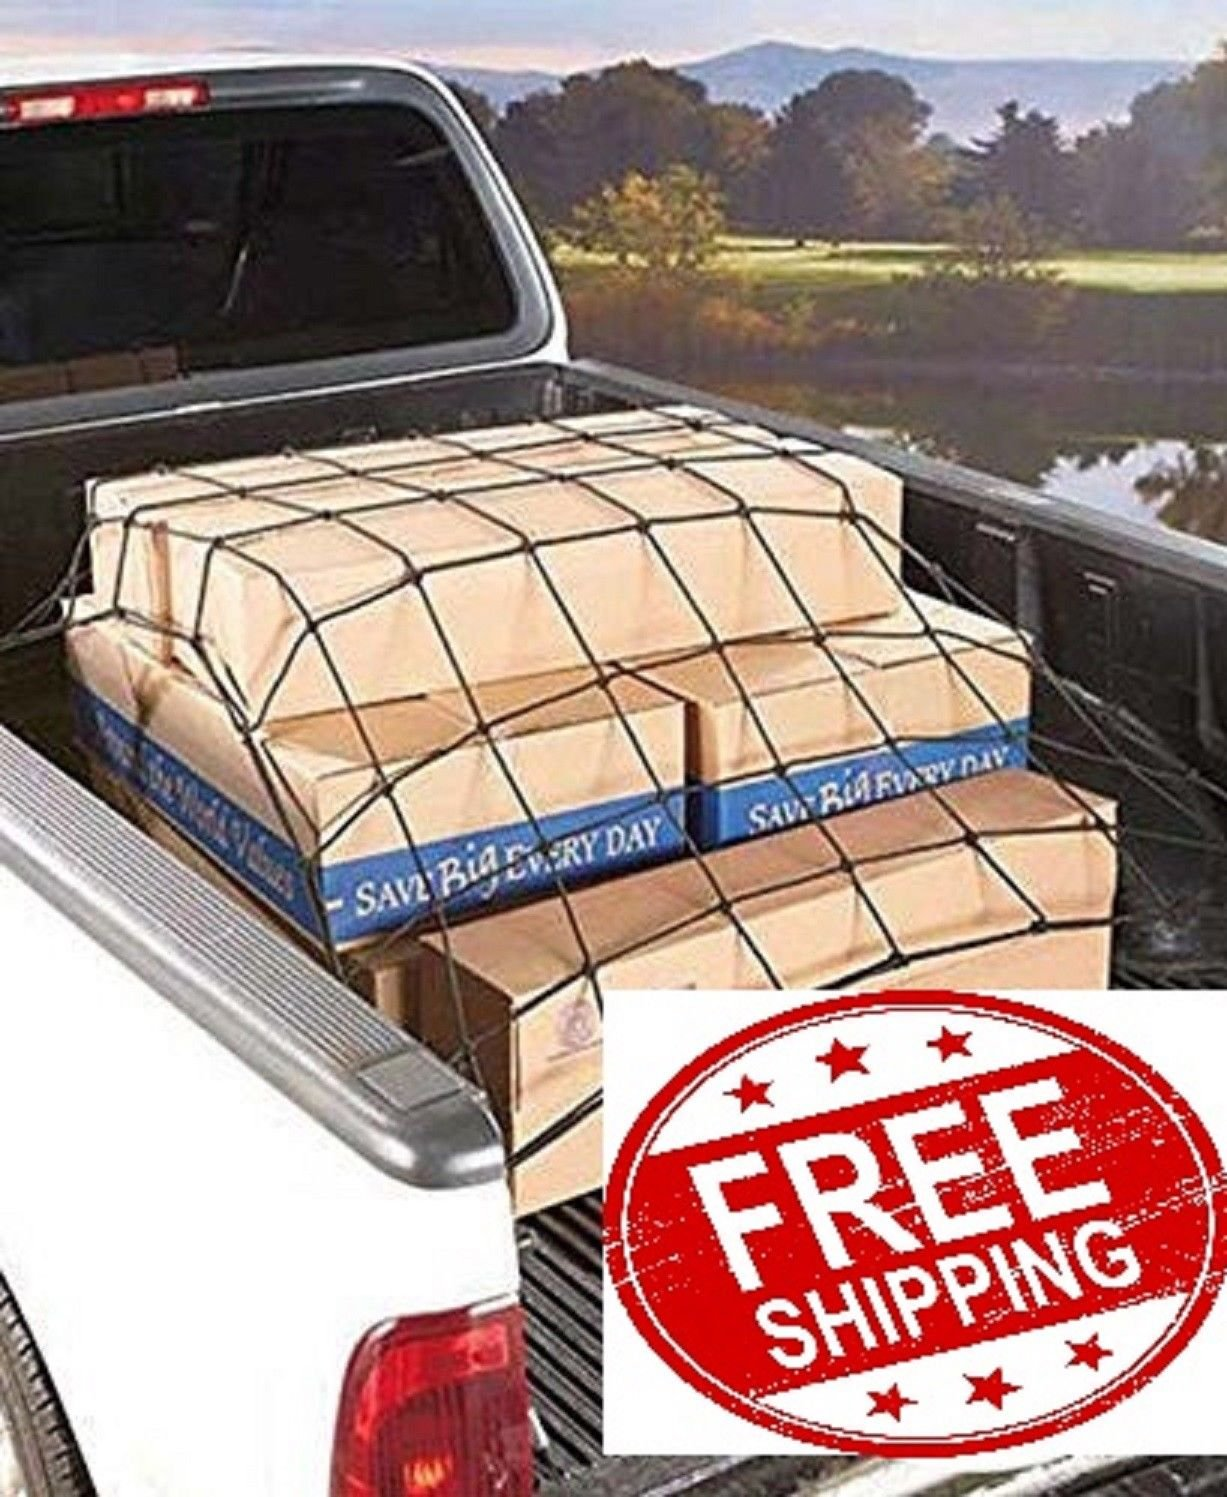 Trunknets Inc Cargo Bed Tie Down Hooks for Ford F-Series Pickup Full Size Short Bed 66 x 74 New 8523744166